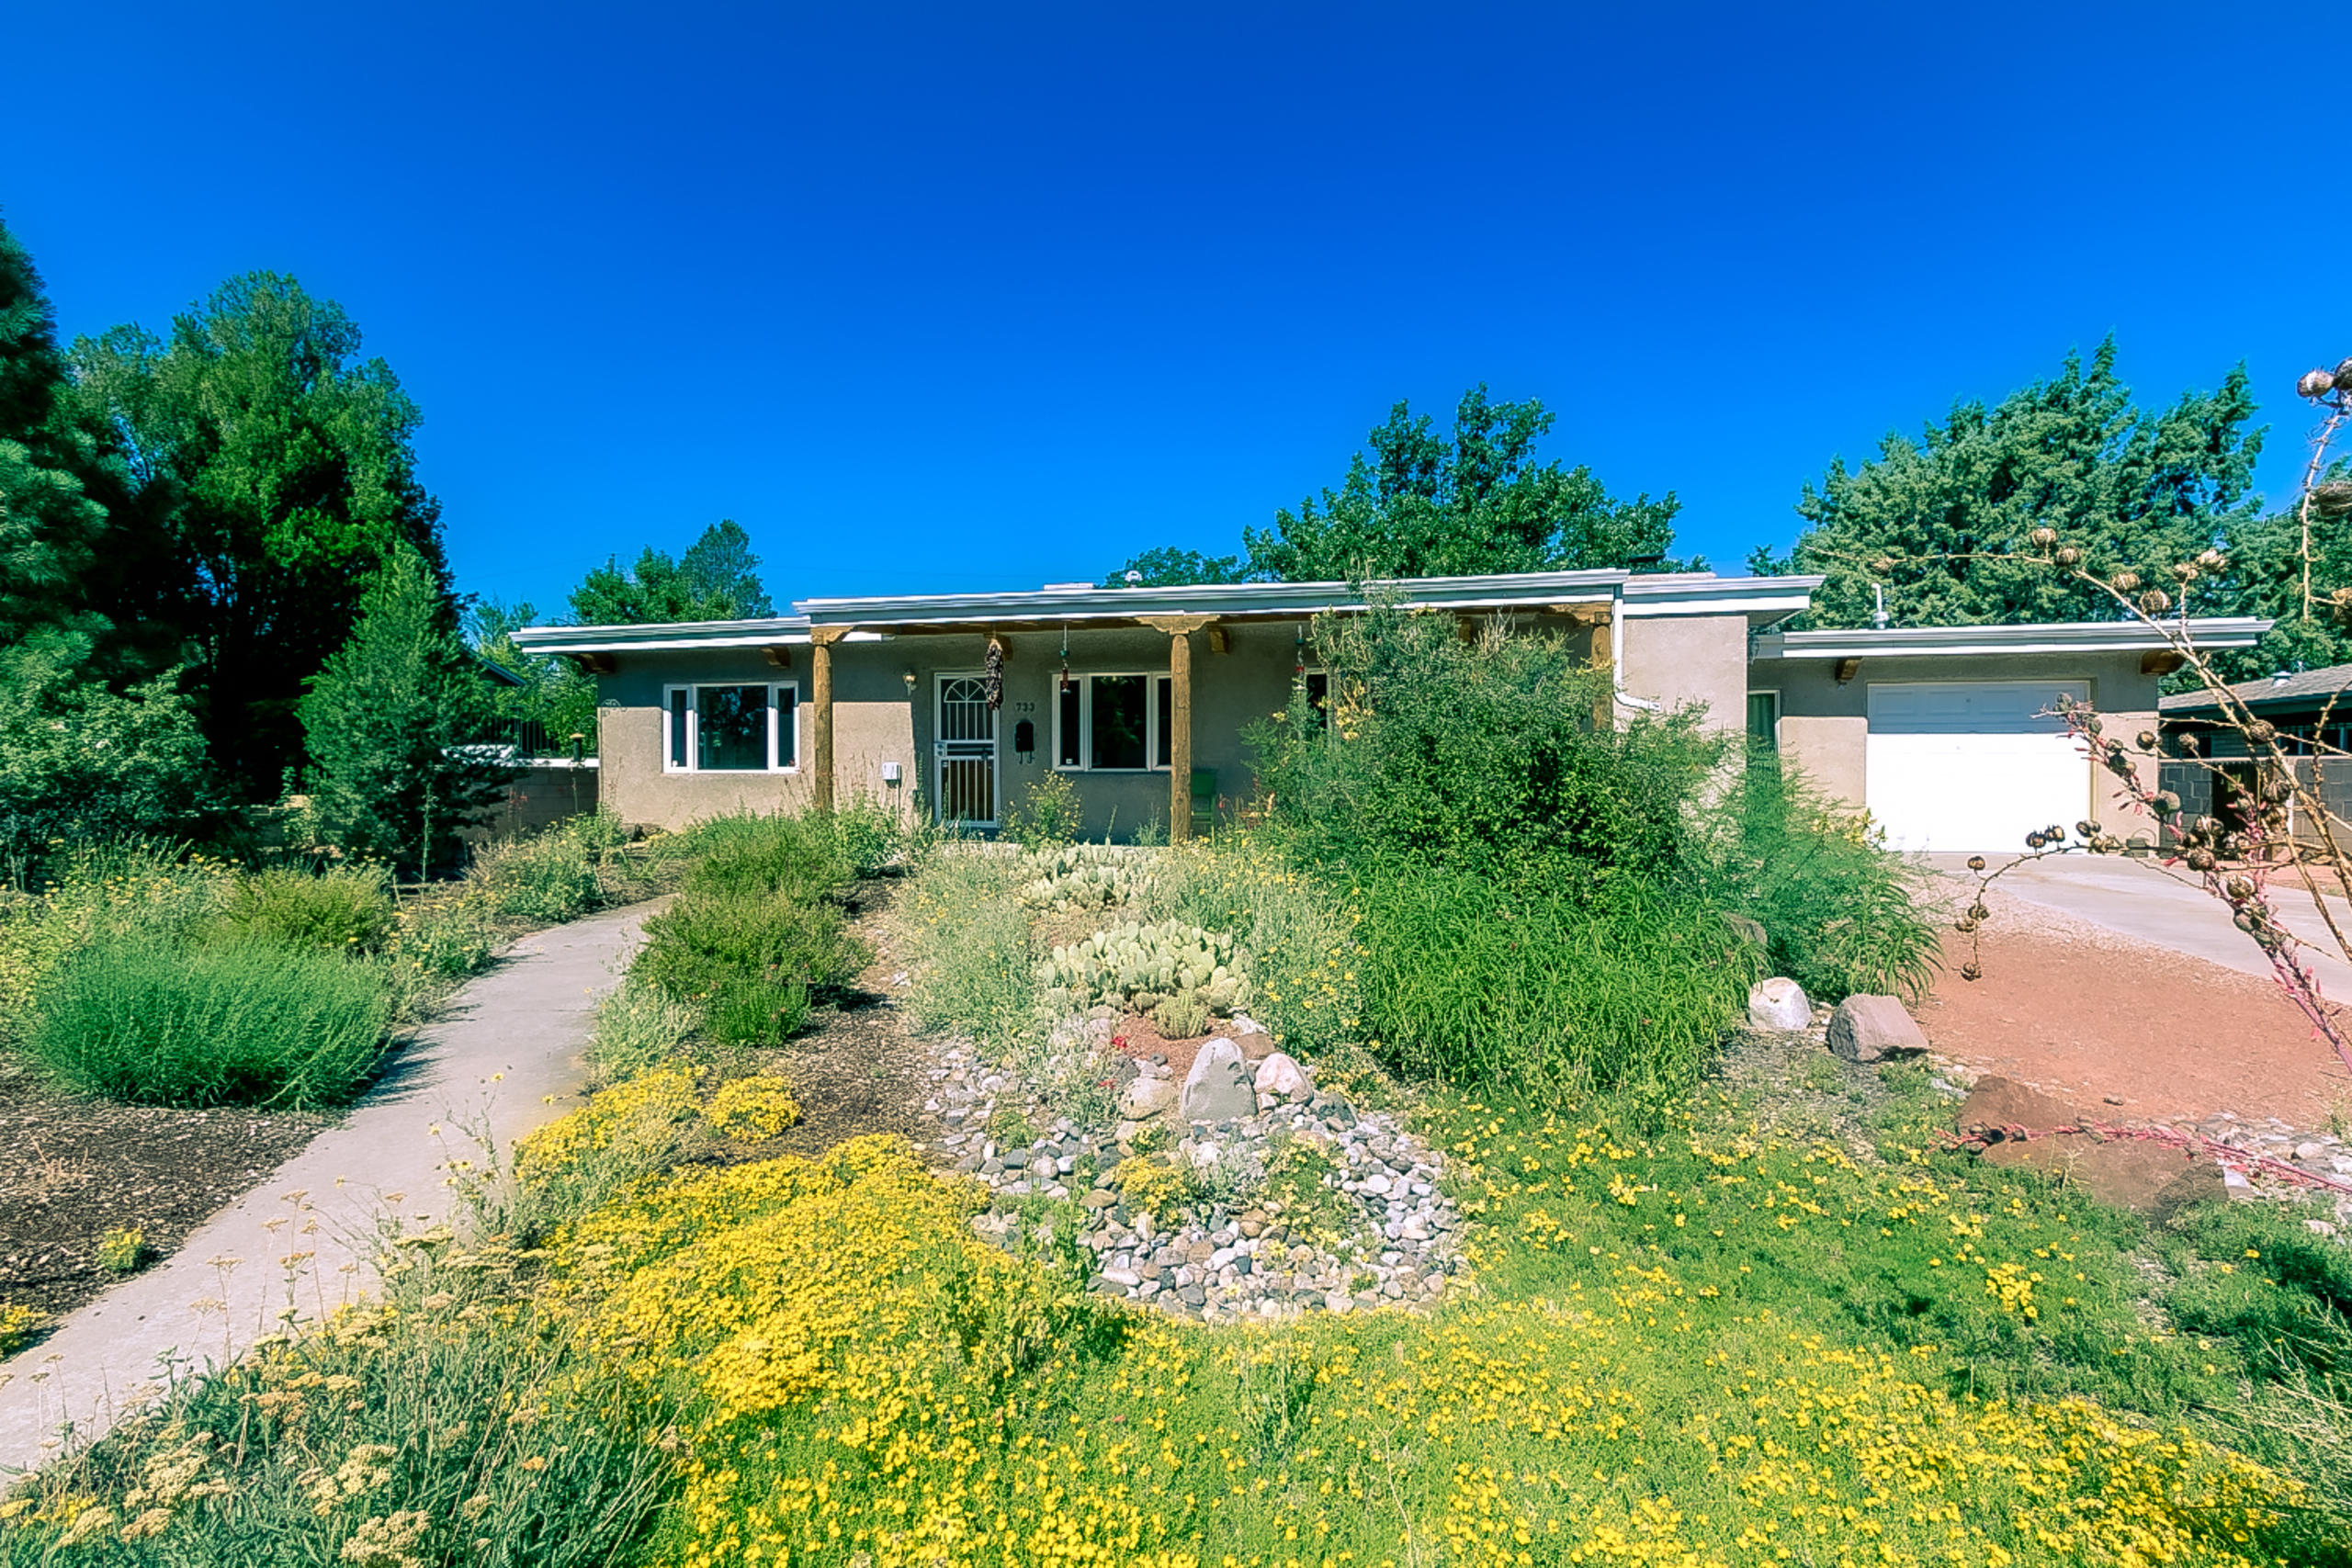 This eminently livable UNM Area casa evokes a blend of Mid-Century comfort & SW charm. The sunlit 1950 sq ft residence boasts 3 bdrms 2 full baths & 1 car garage on landscaped 0.23 acre lot. 2015 kitchen renovation includes custom hickory cabs, granite counters, stainless appliances/hanging vent hood & added interior space w/ pantry & laundry area. Kitchen open to living room. Sizable den w/ fireplace at opposite side of kitchen. Large main bdrm w/ French doors, walk-in closet & en suite w/ jetted tub & shower. 2 add'l bdrms separate from the main & divided by the full hallway restroom. Refinished oak hardwood floors. Thermal windows. Private backyard boasts a huge contemporary metal pergola w/ diagonal slats, hot tub, lawn & mature fruit trees. Close to Nob Hill, UNM & mid-city amenities.